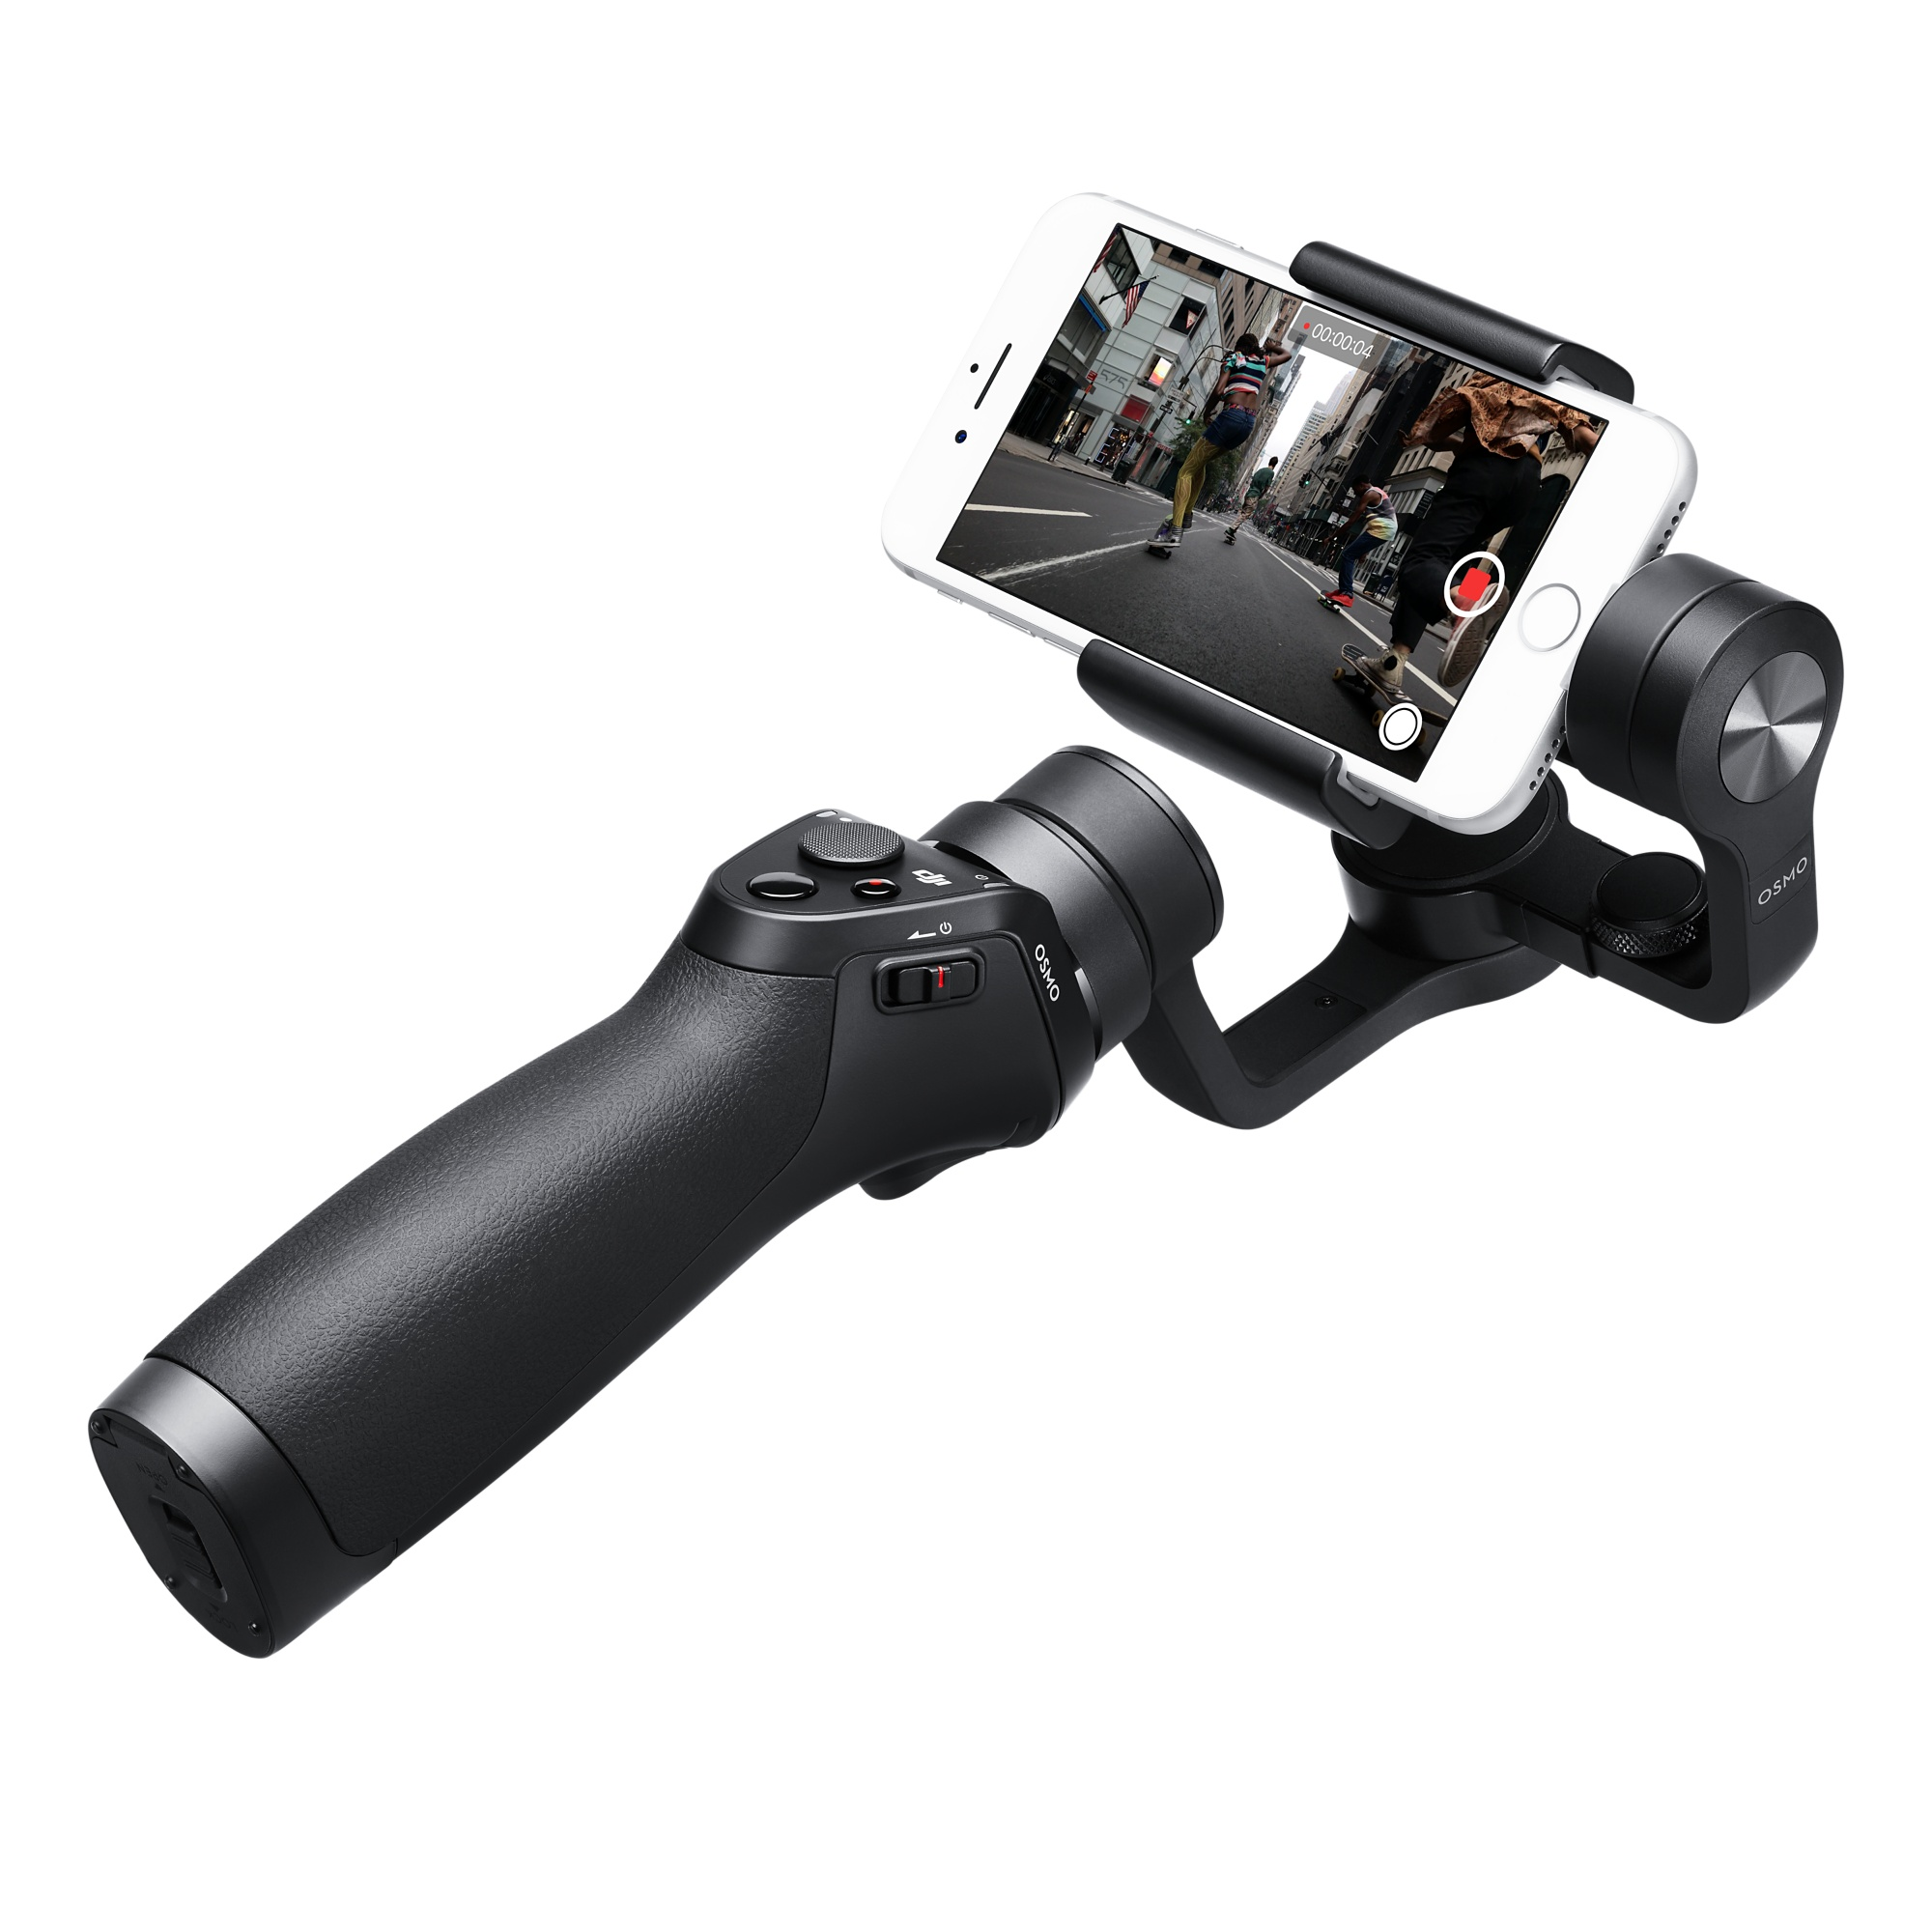 dji-osmo-mobile-gimbal-for-iphone